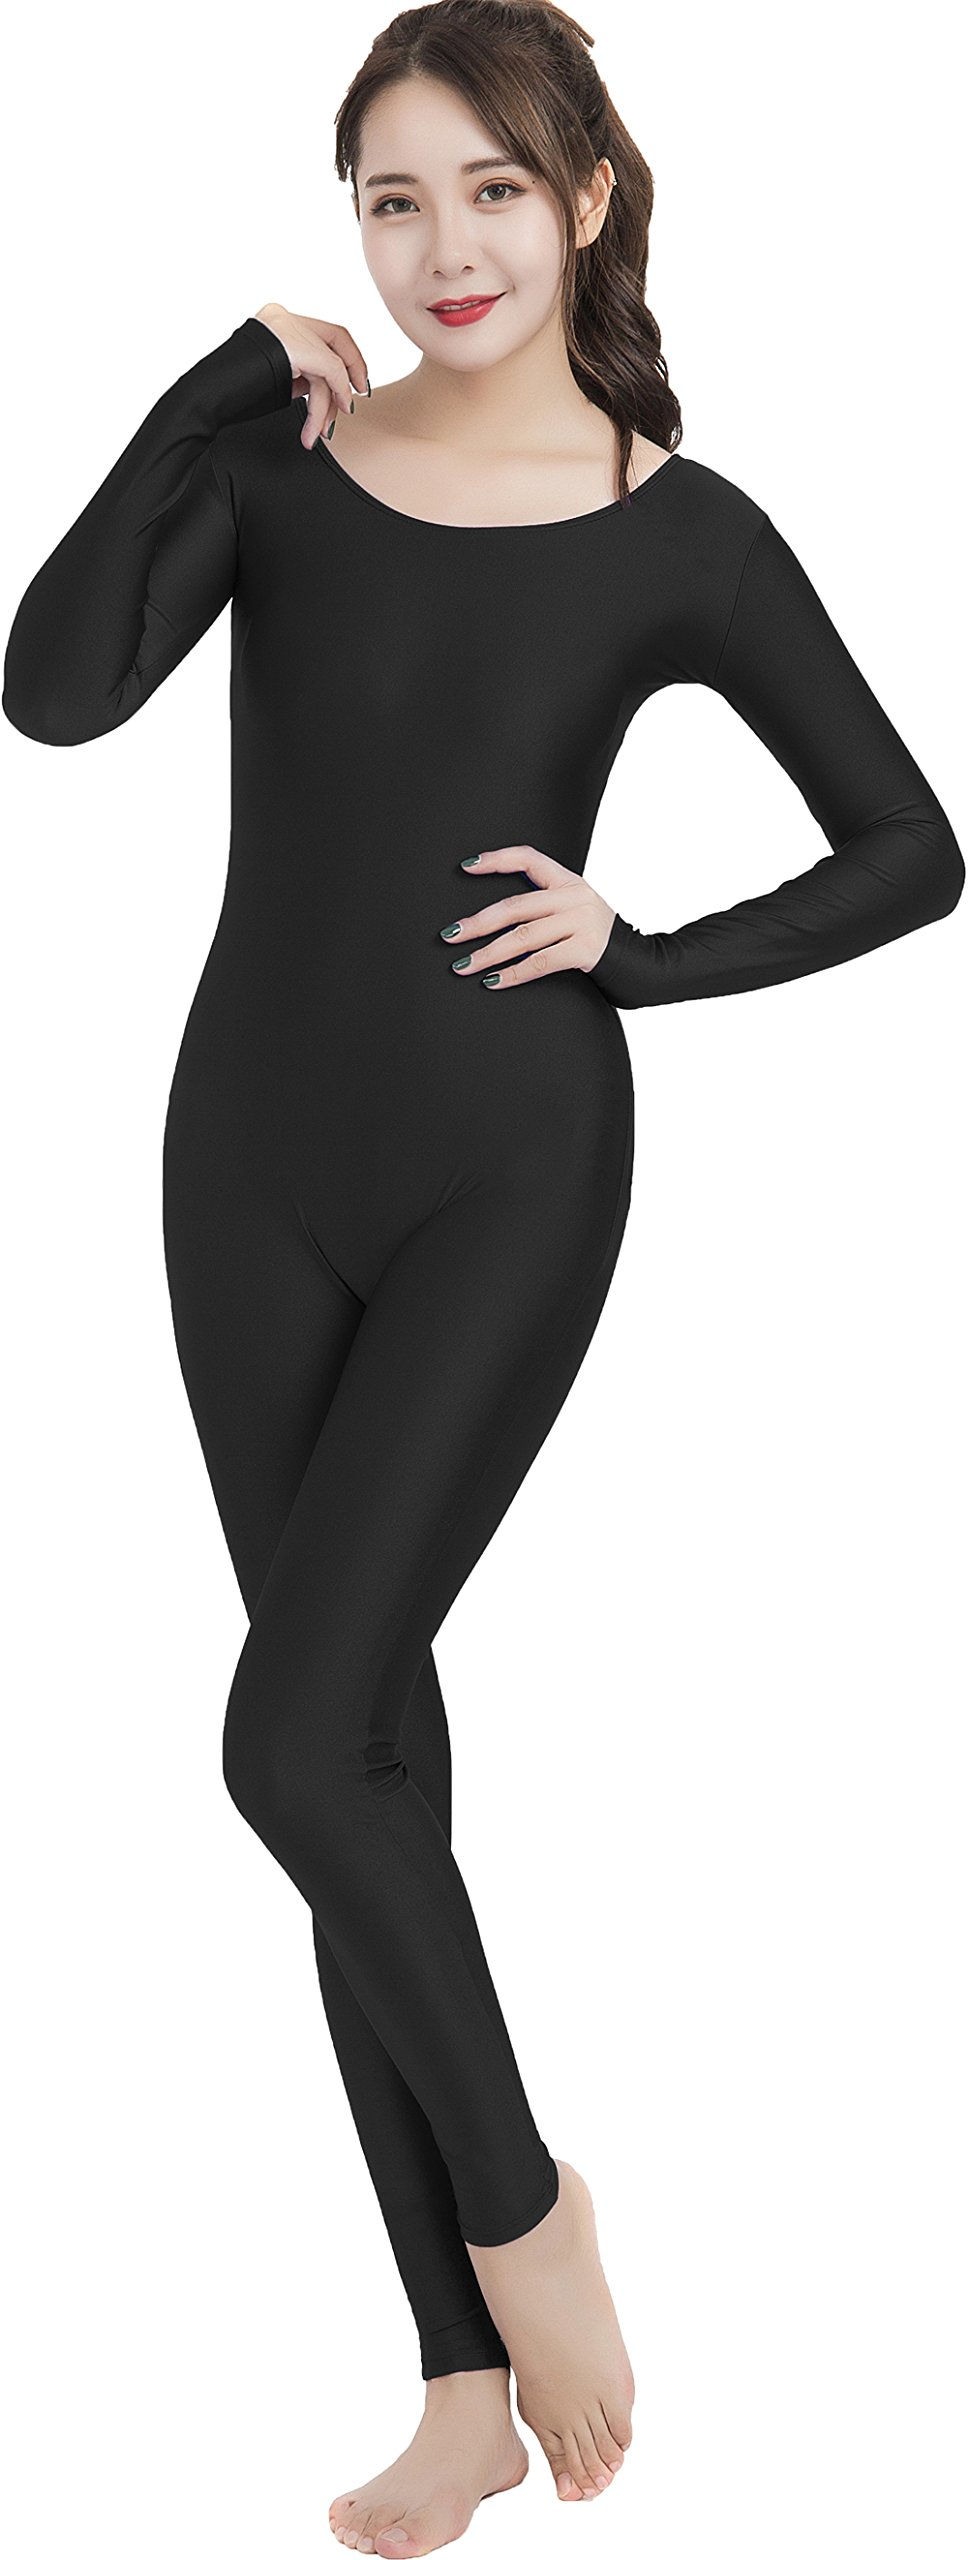 Speerise Unitard Bodysuit Long Sleeve Spandex For Women Dance Costume L Black